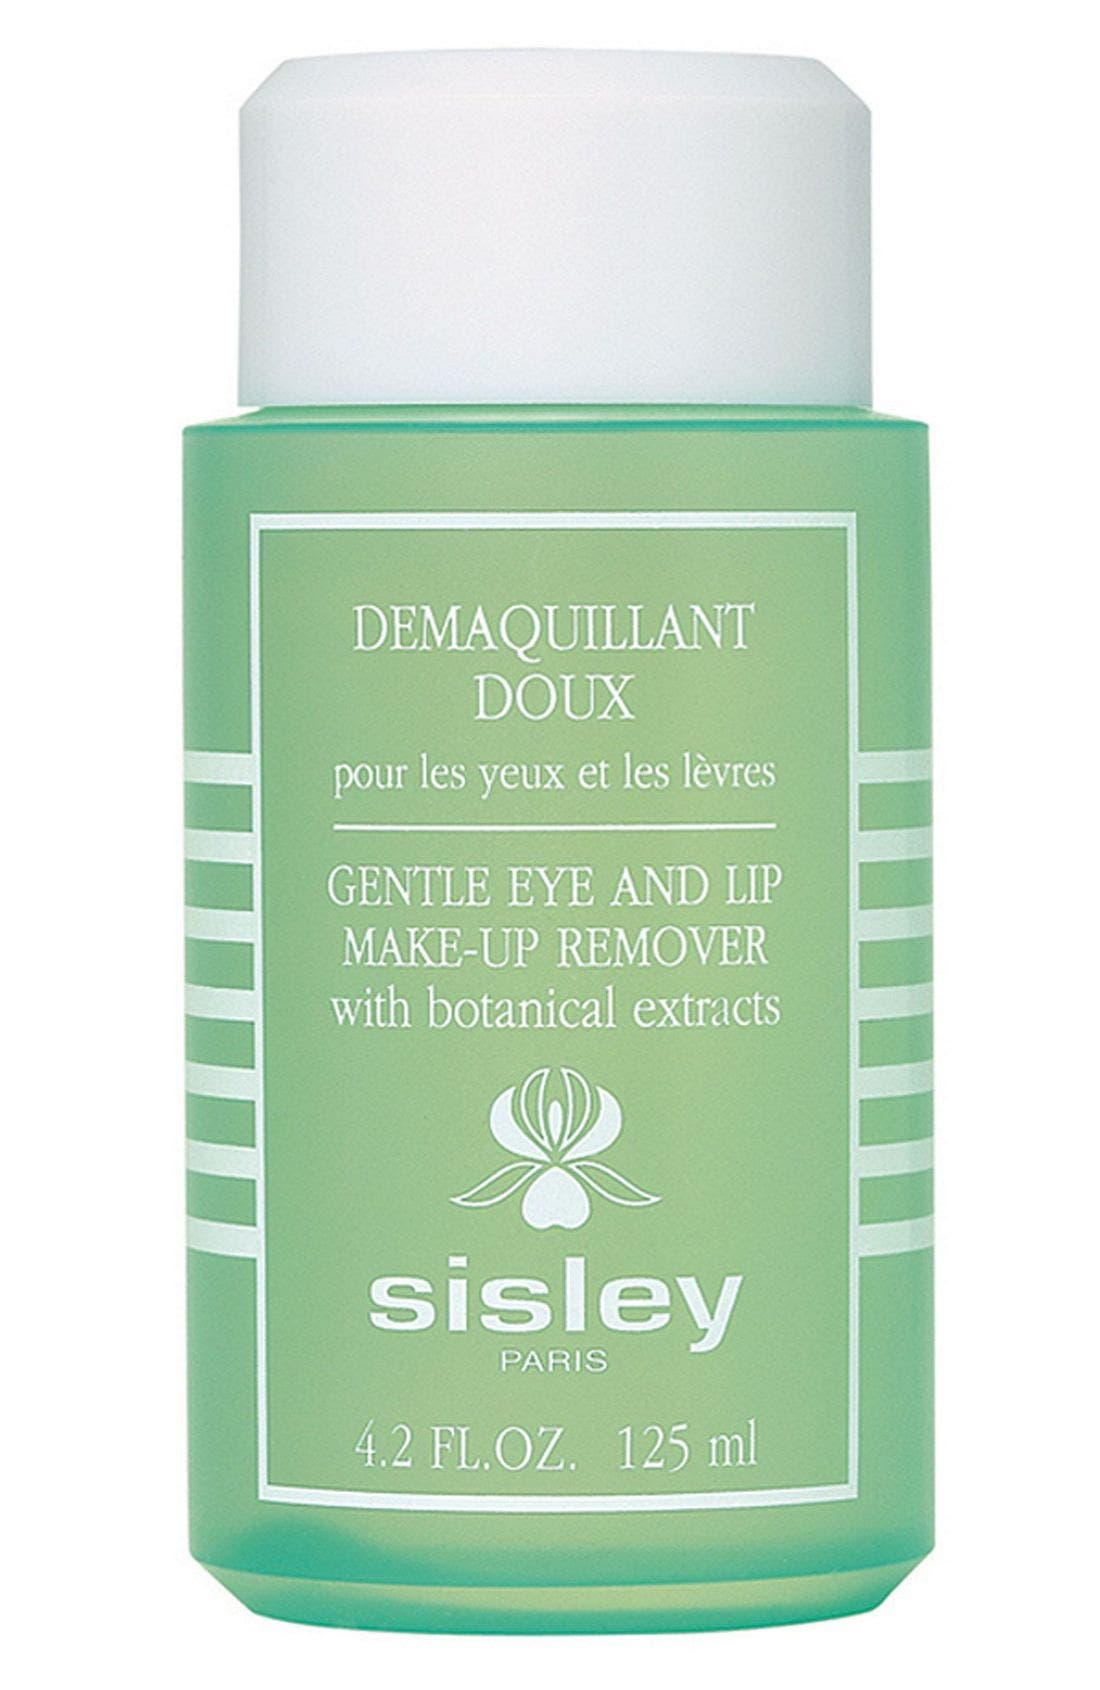 Sisley Paris Gentle Eye and Lip Make-Up Remover